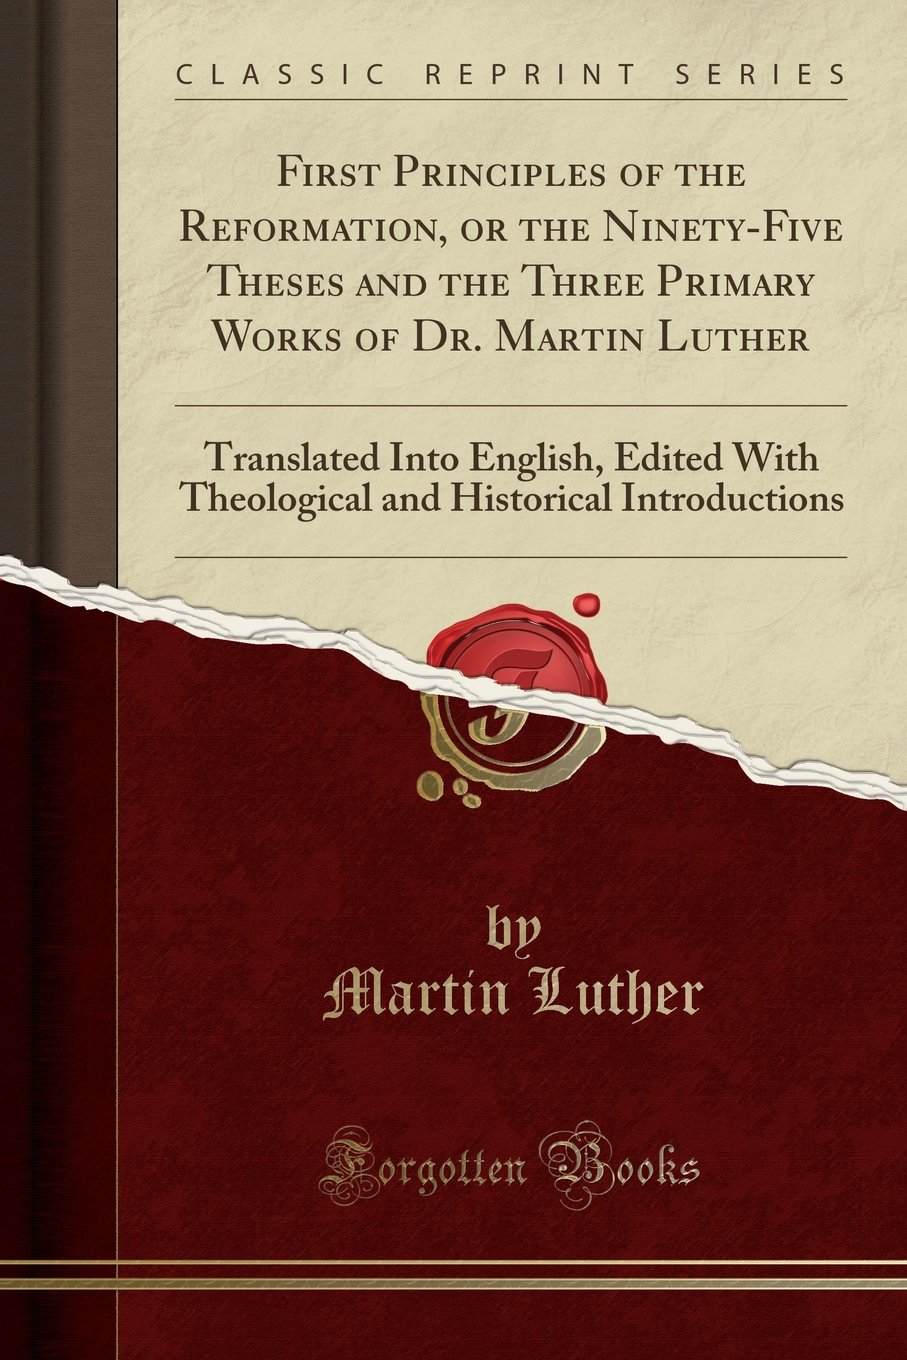 Download First Principles of the Reformation, or the Ninety-Five Theses and the Three Primary Works of Dr. Martin Luther: Translated Into English, Edited With ... Historical Introductions (Classic Reprint) pdf epub